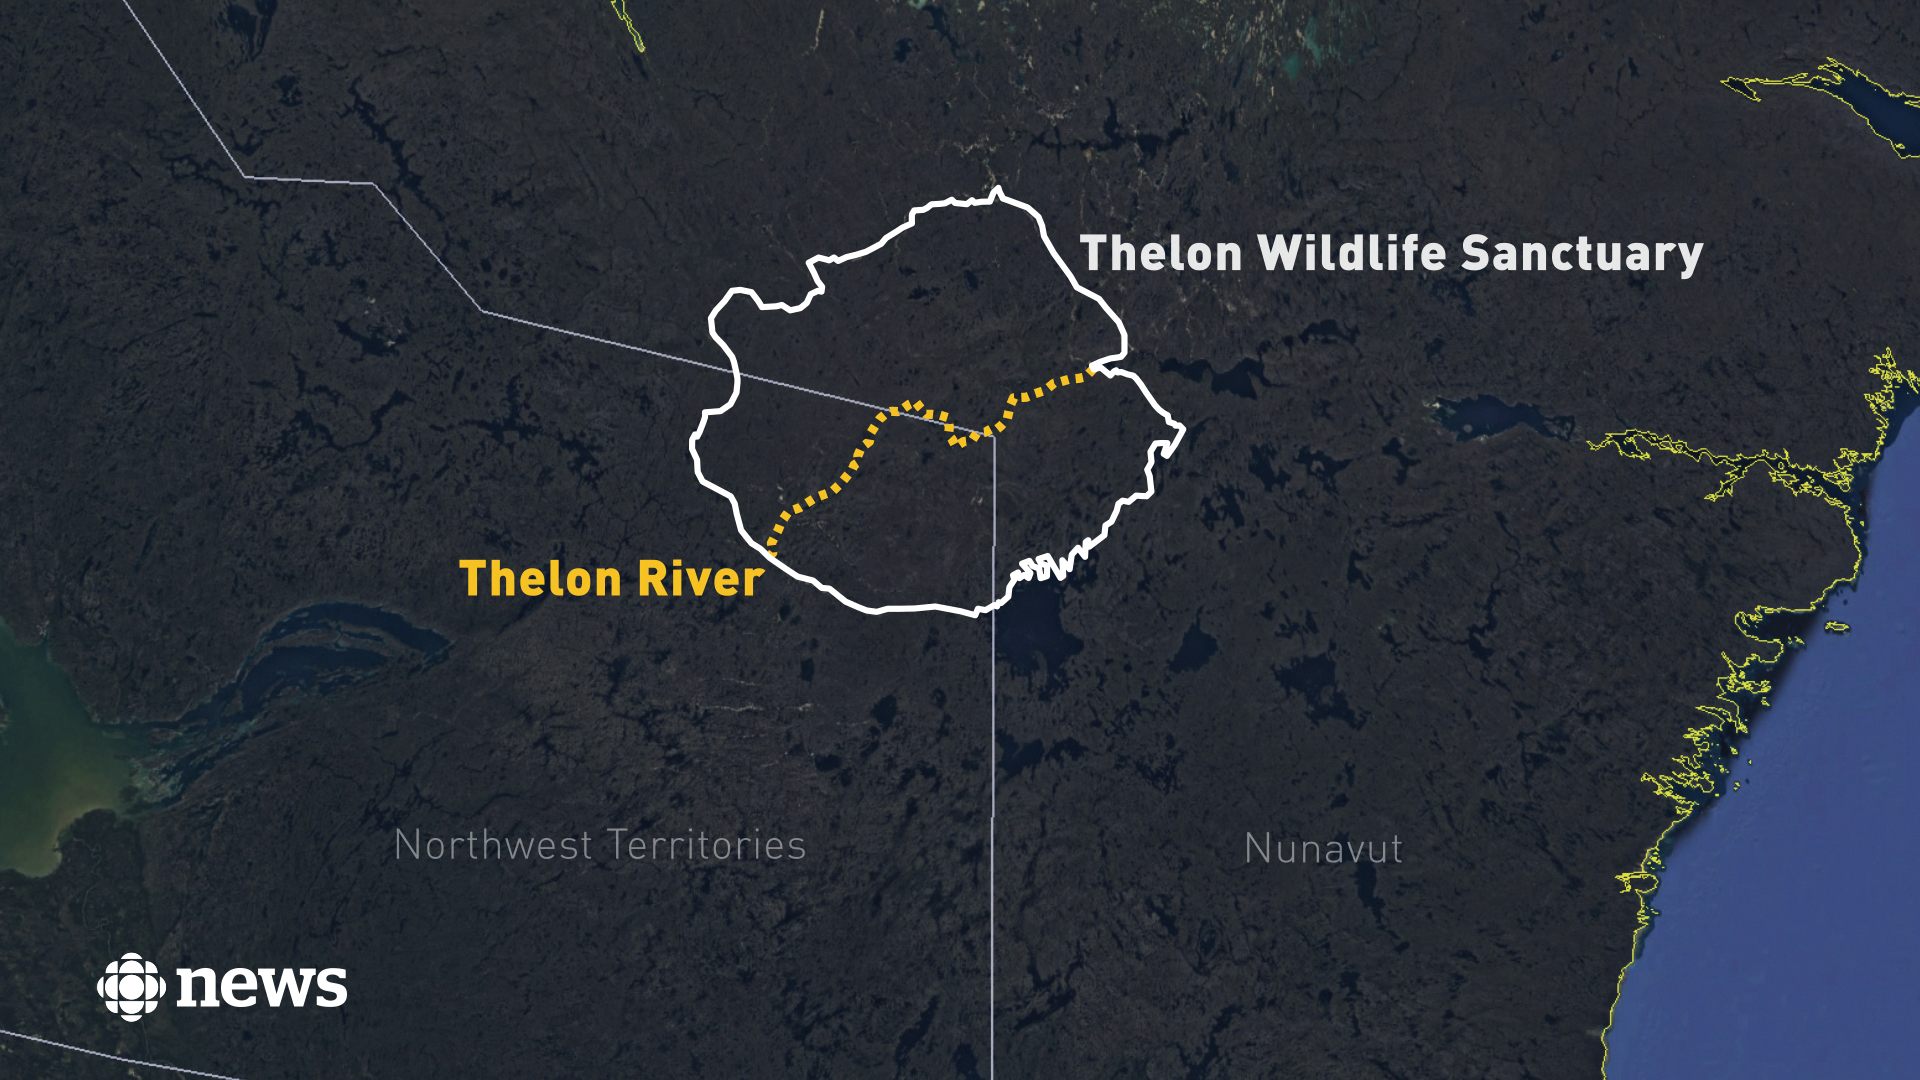 At more than 900 kilometres long, the Thelon River is the largest river in the Canadian tundra. The Thelon Wildlife Sanctuary is the largest protected area in Canada. (CBC News Graphics)